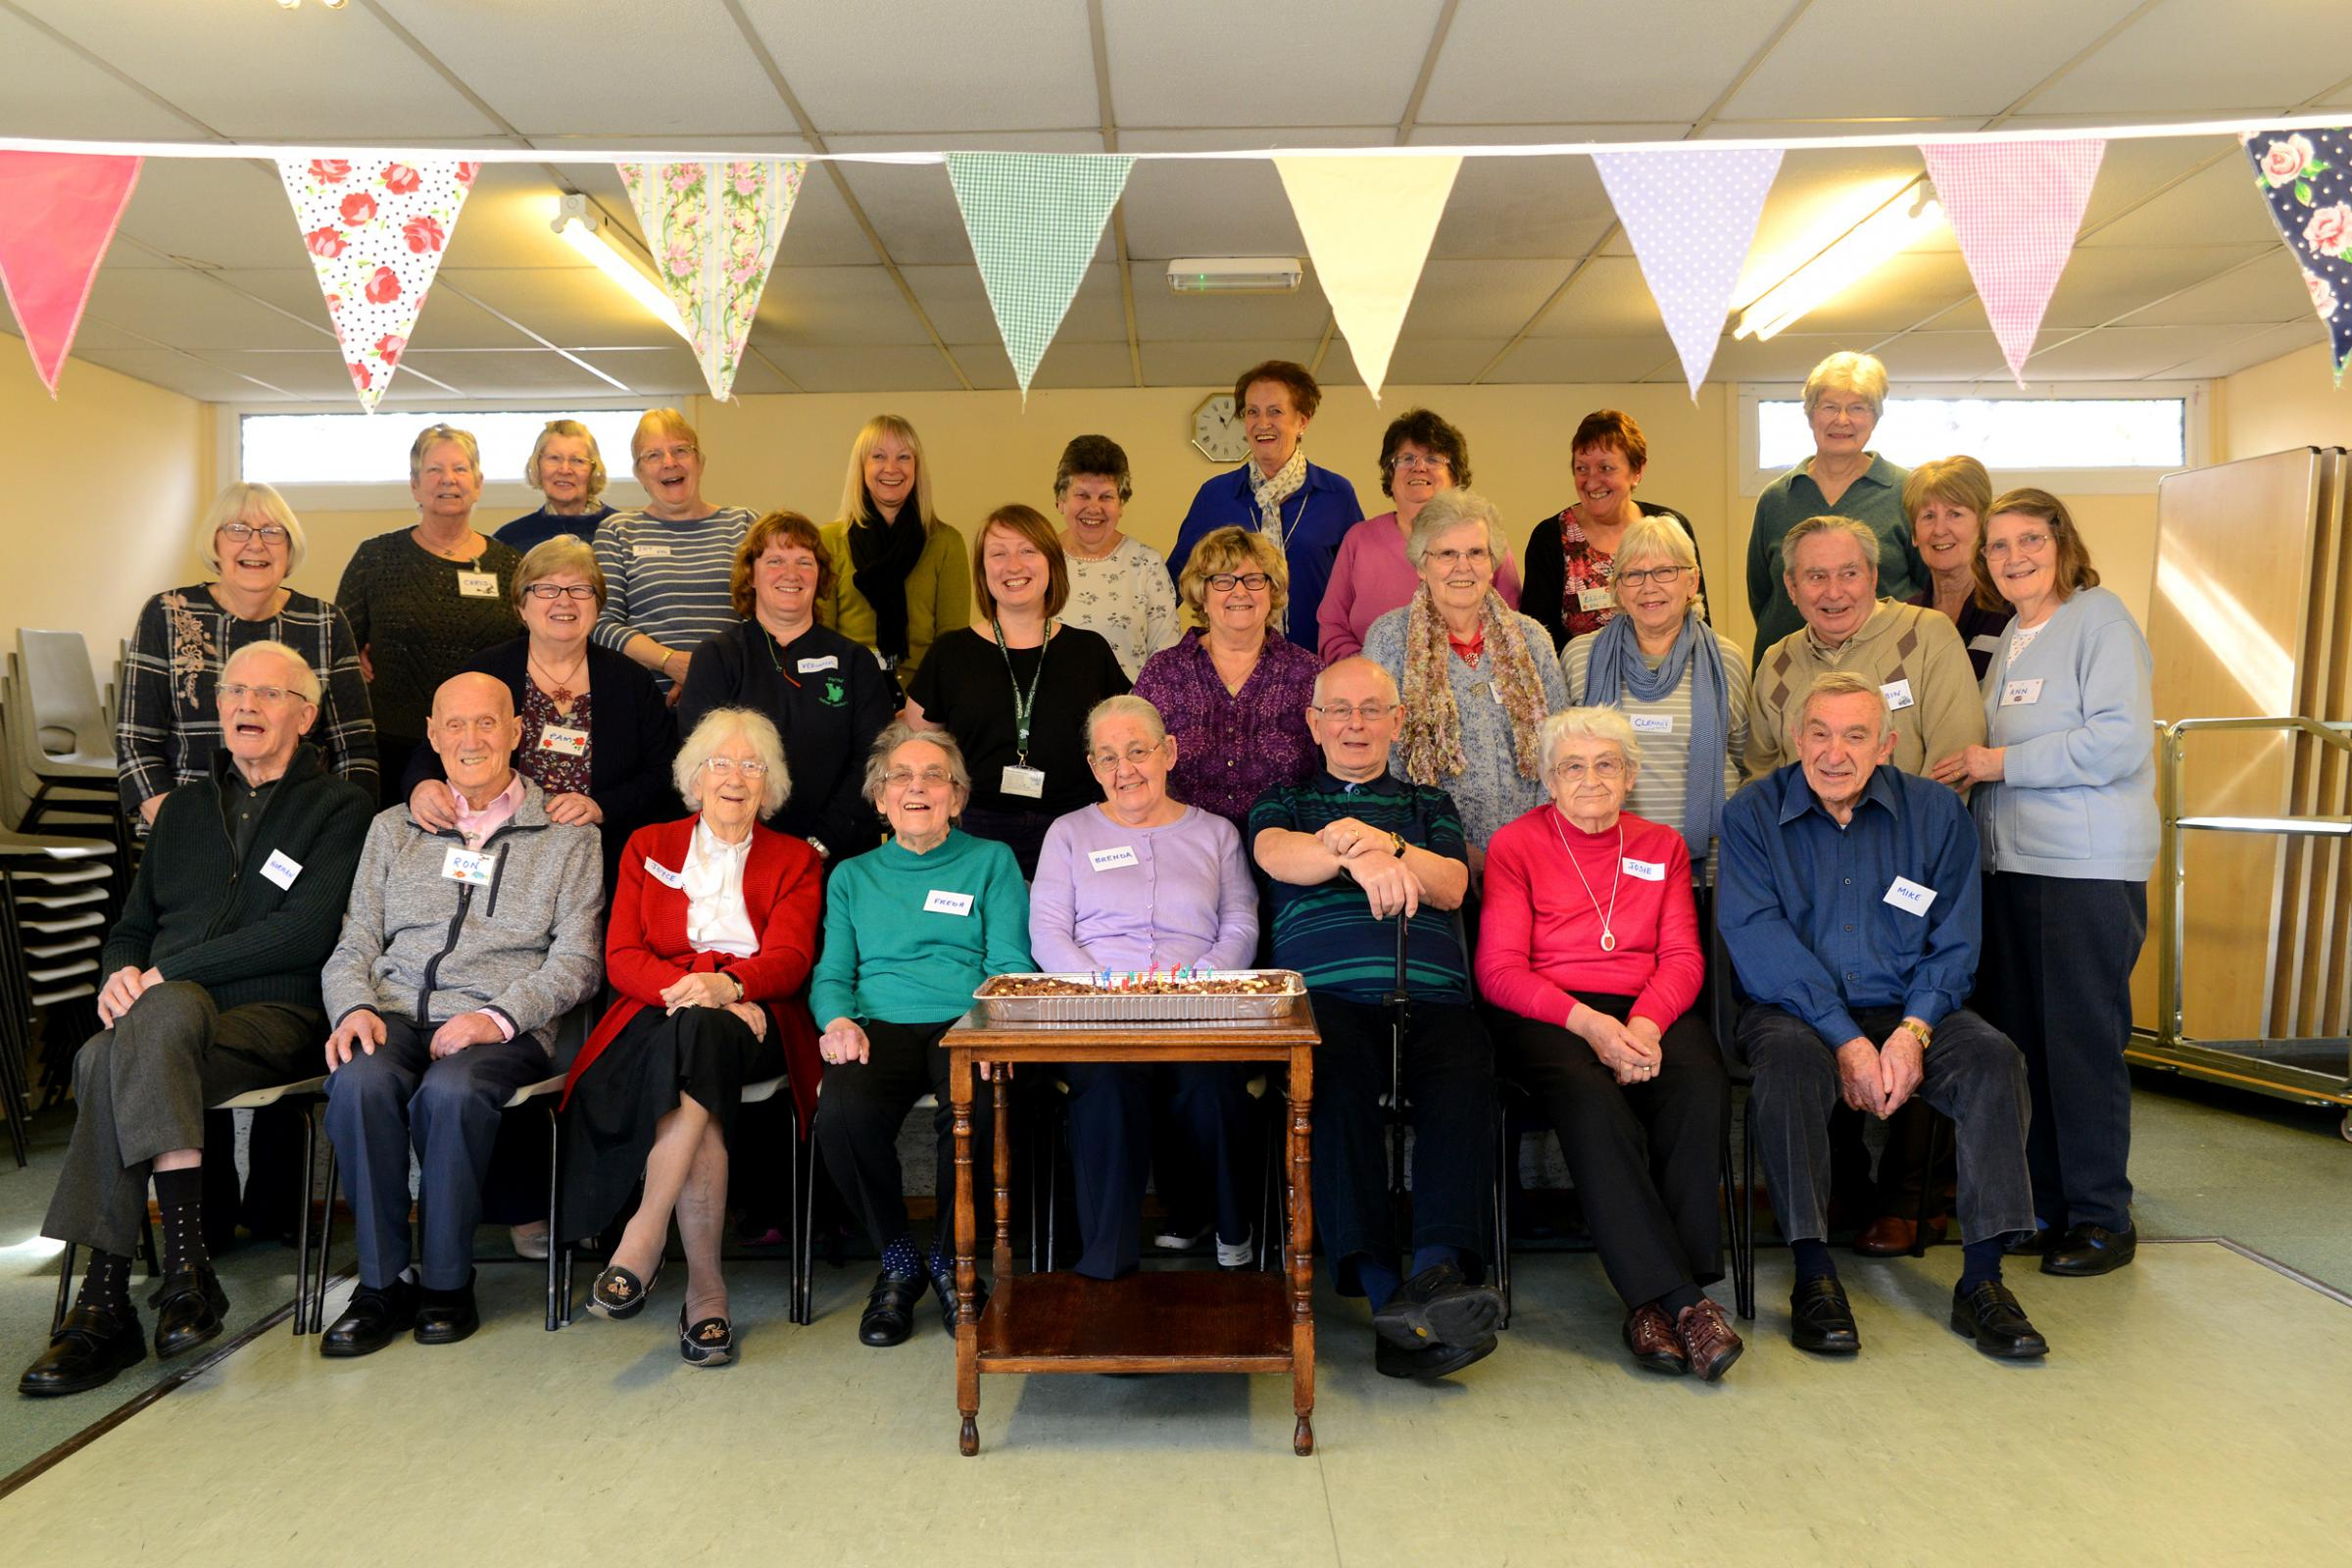 CELEBRATIONS: The Memory Cafe in Chard's English Martyrs Church Hall, enjoying the ninth birthday